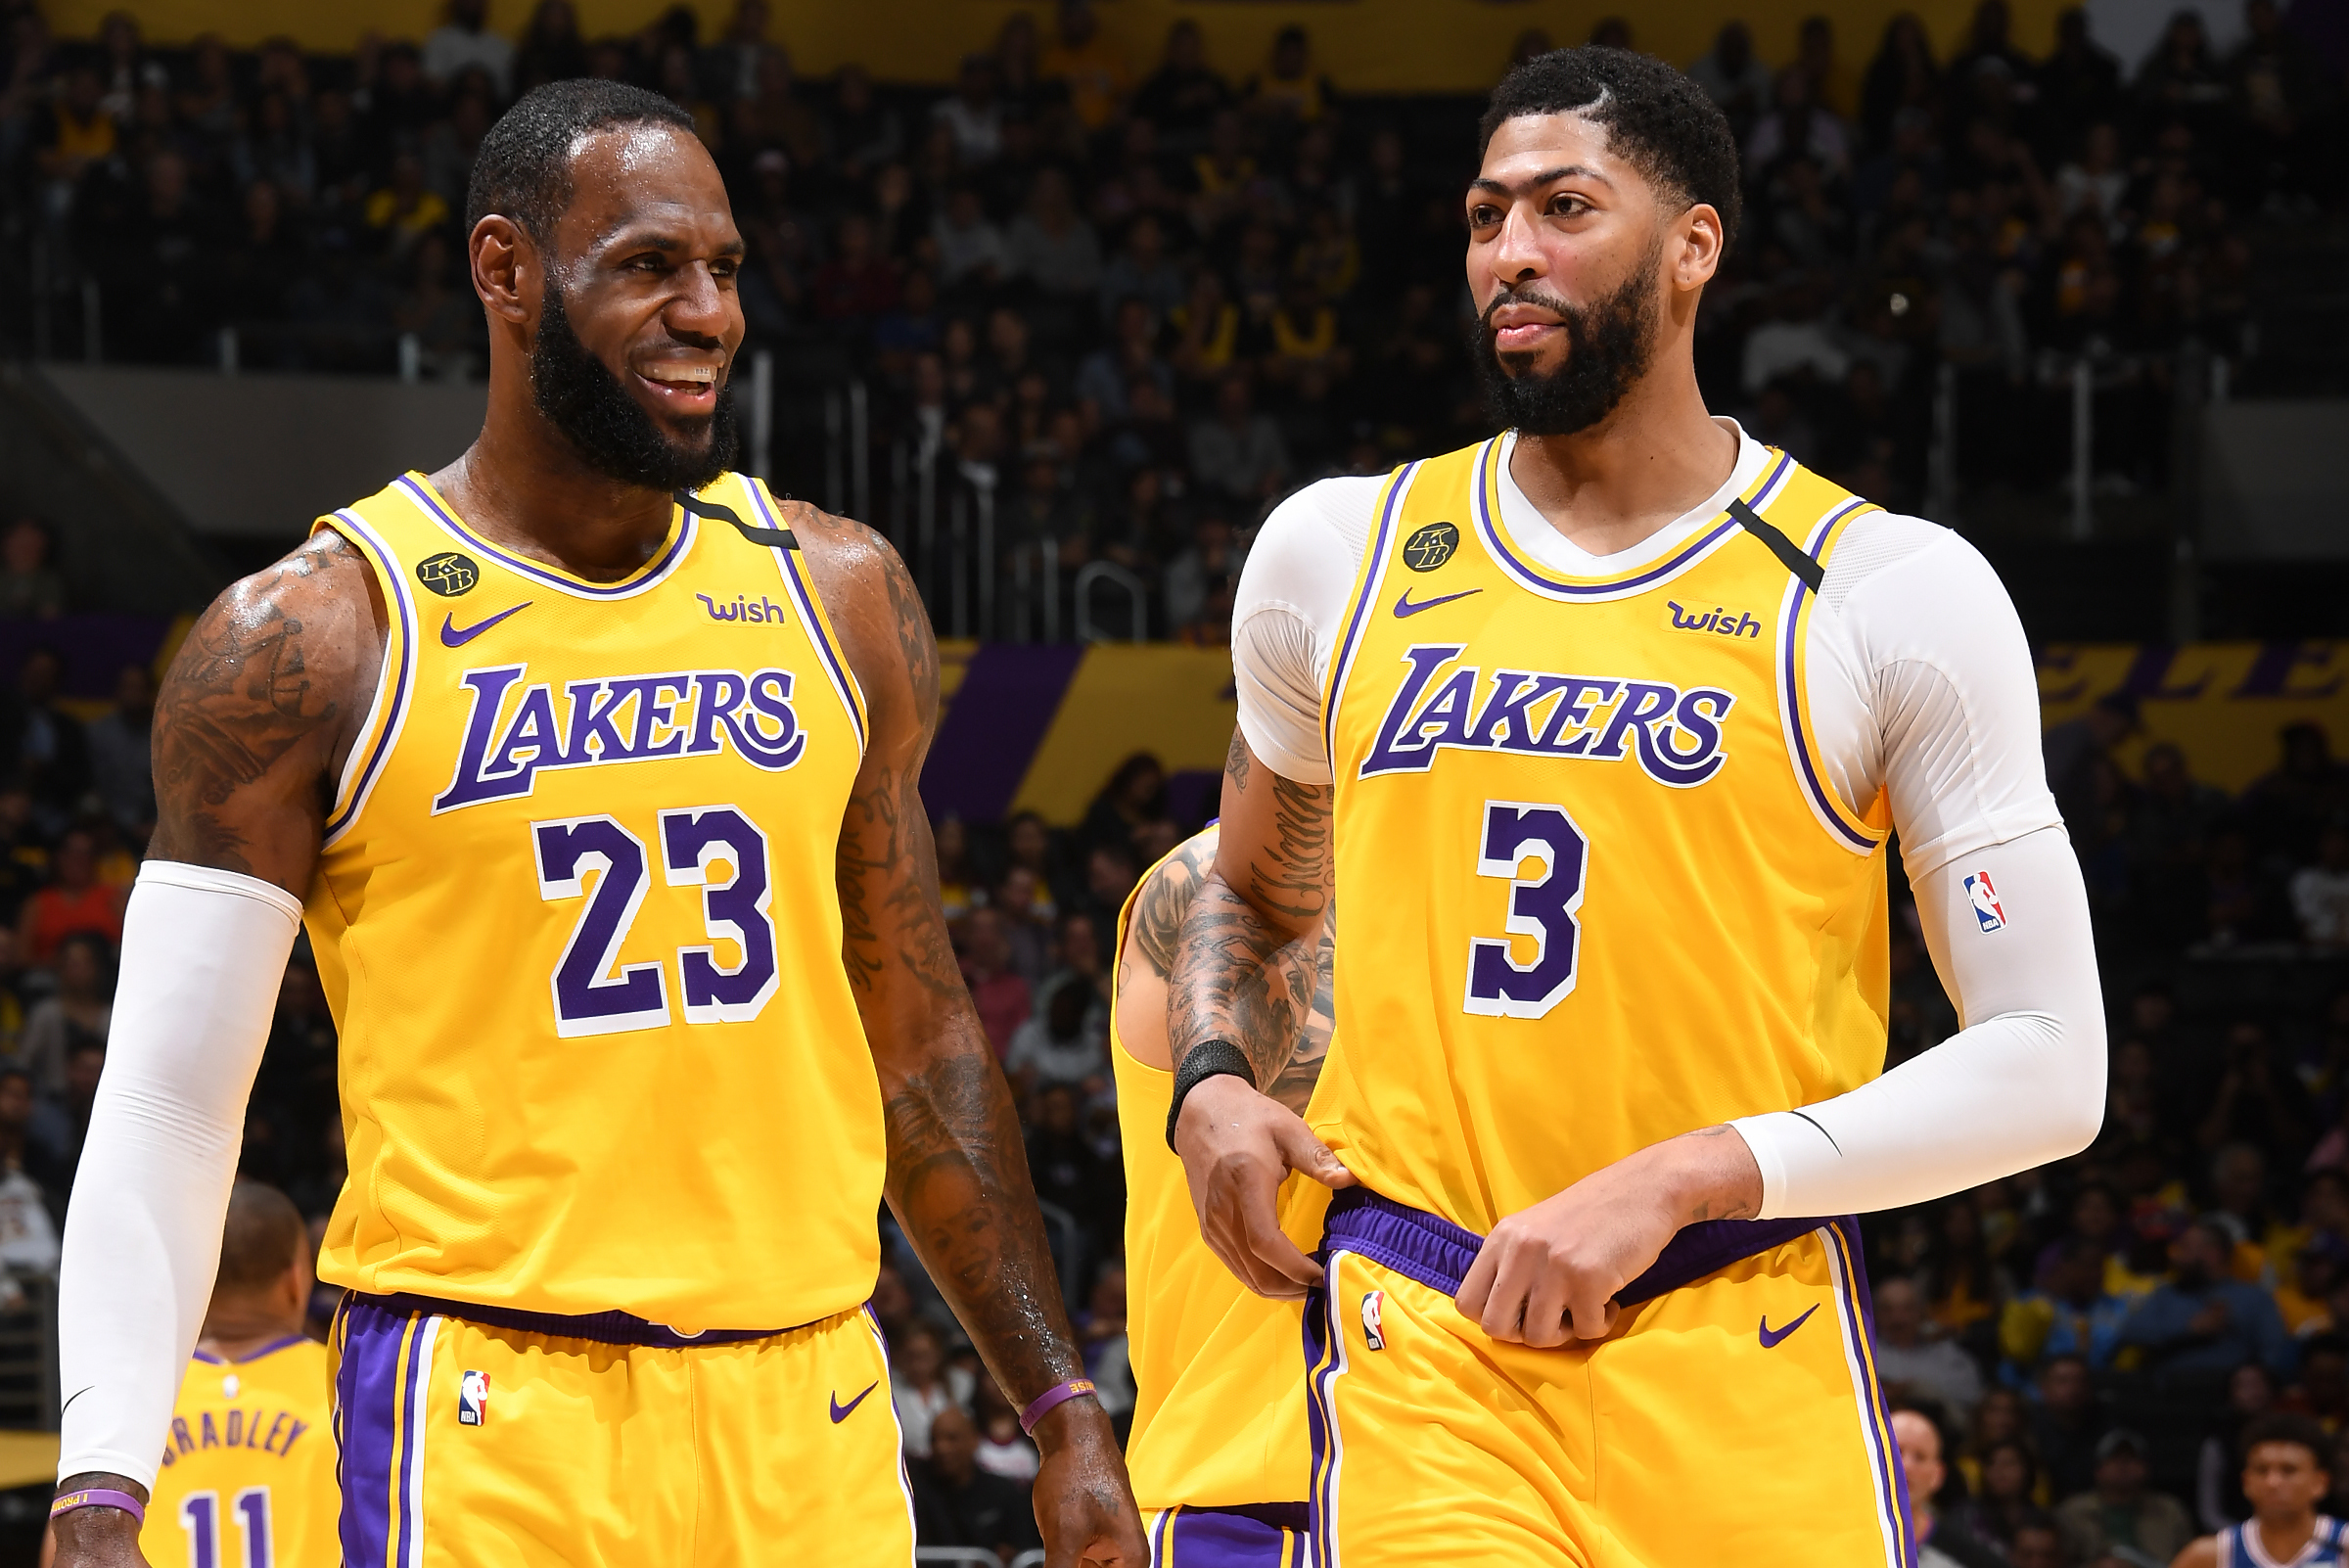 Lakers' Anthony Davis: LeBron James Deserves 2019-20 NBA MVP Award over Giannis | Bleacher Report | Latest News, Videos and Highlights